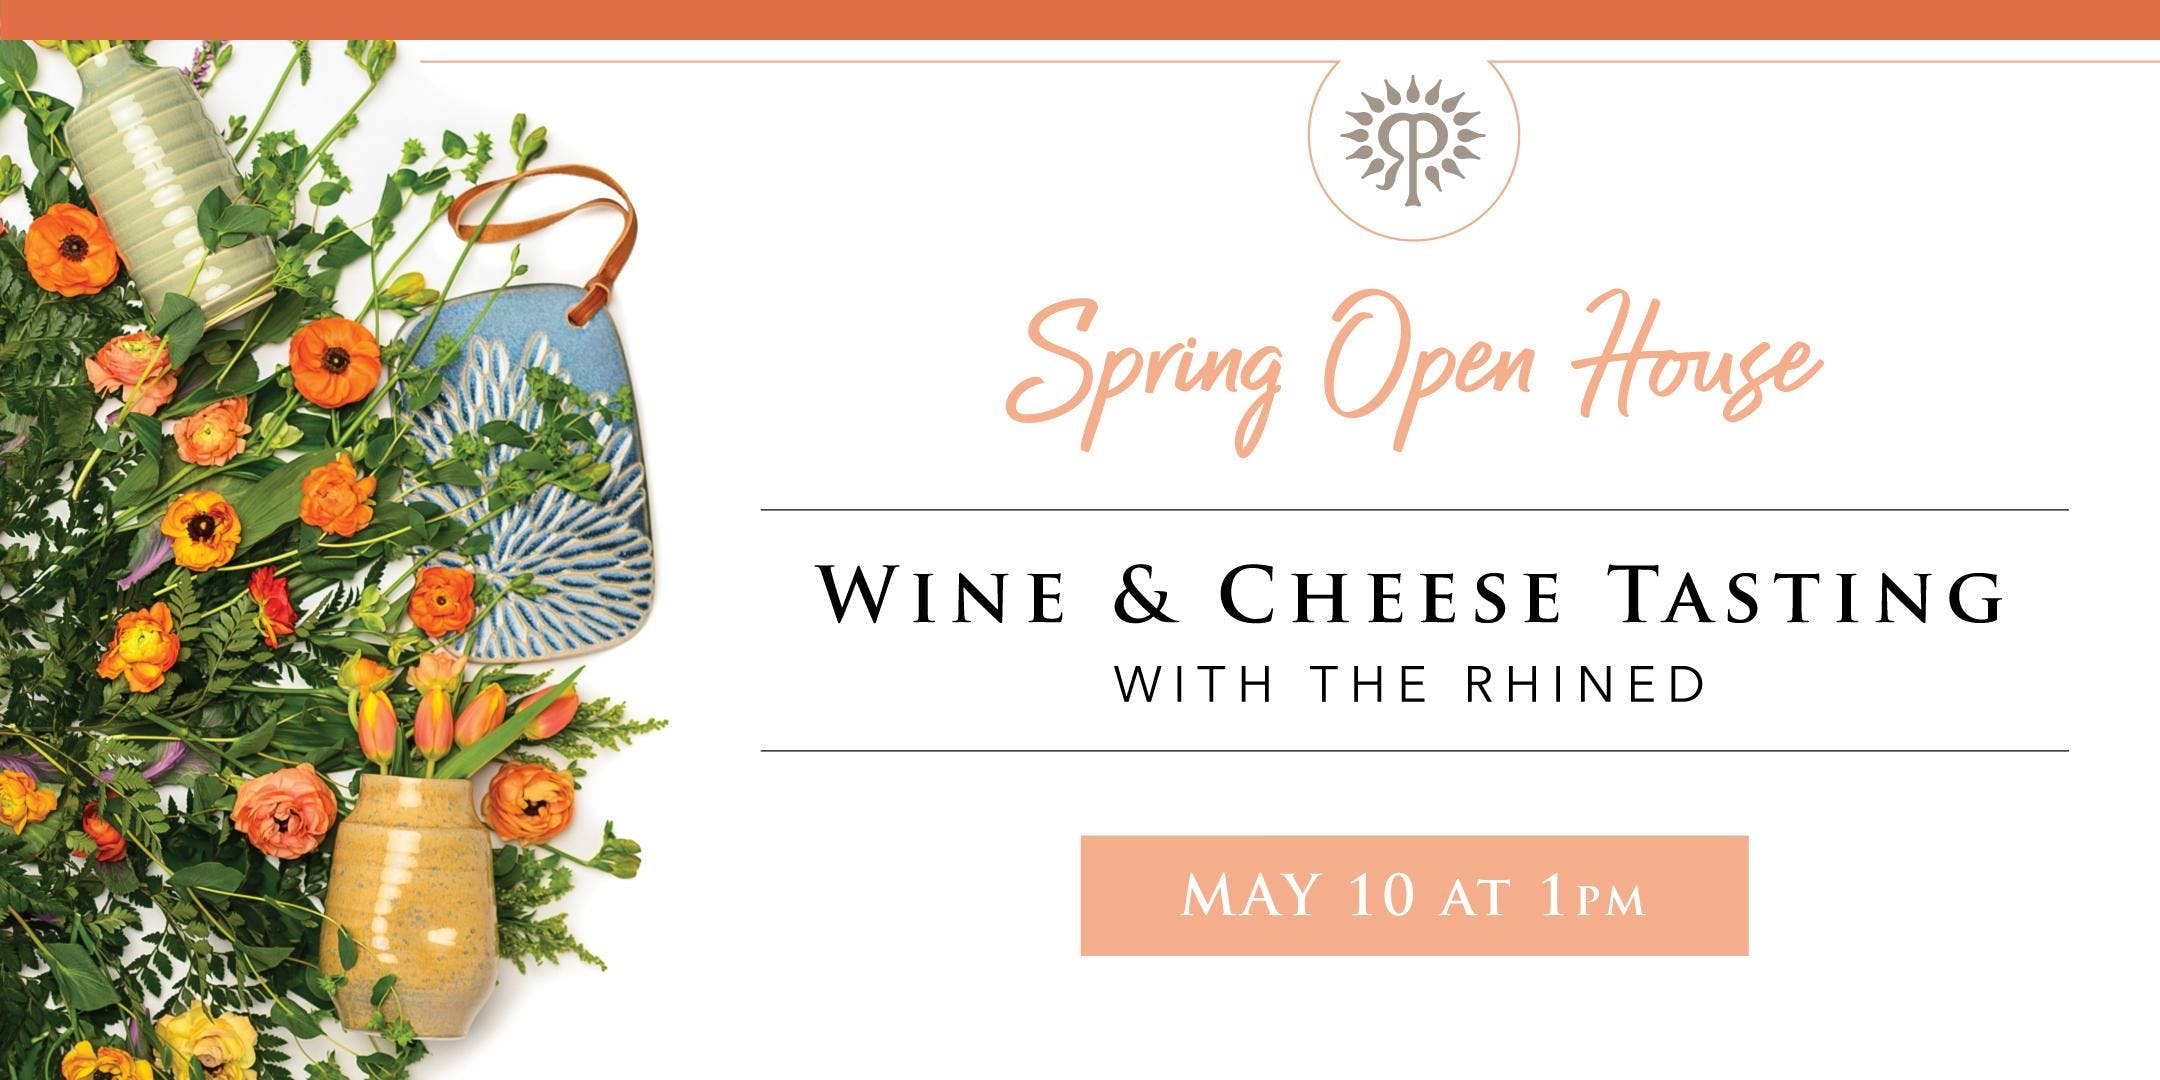 Spring Open House – Wine & Cheese Tasting